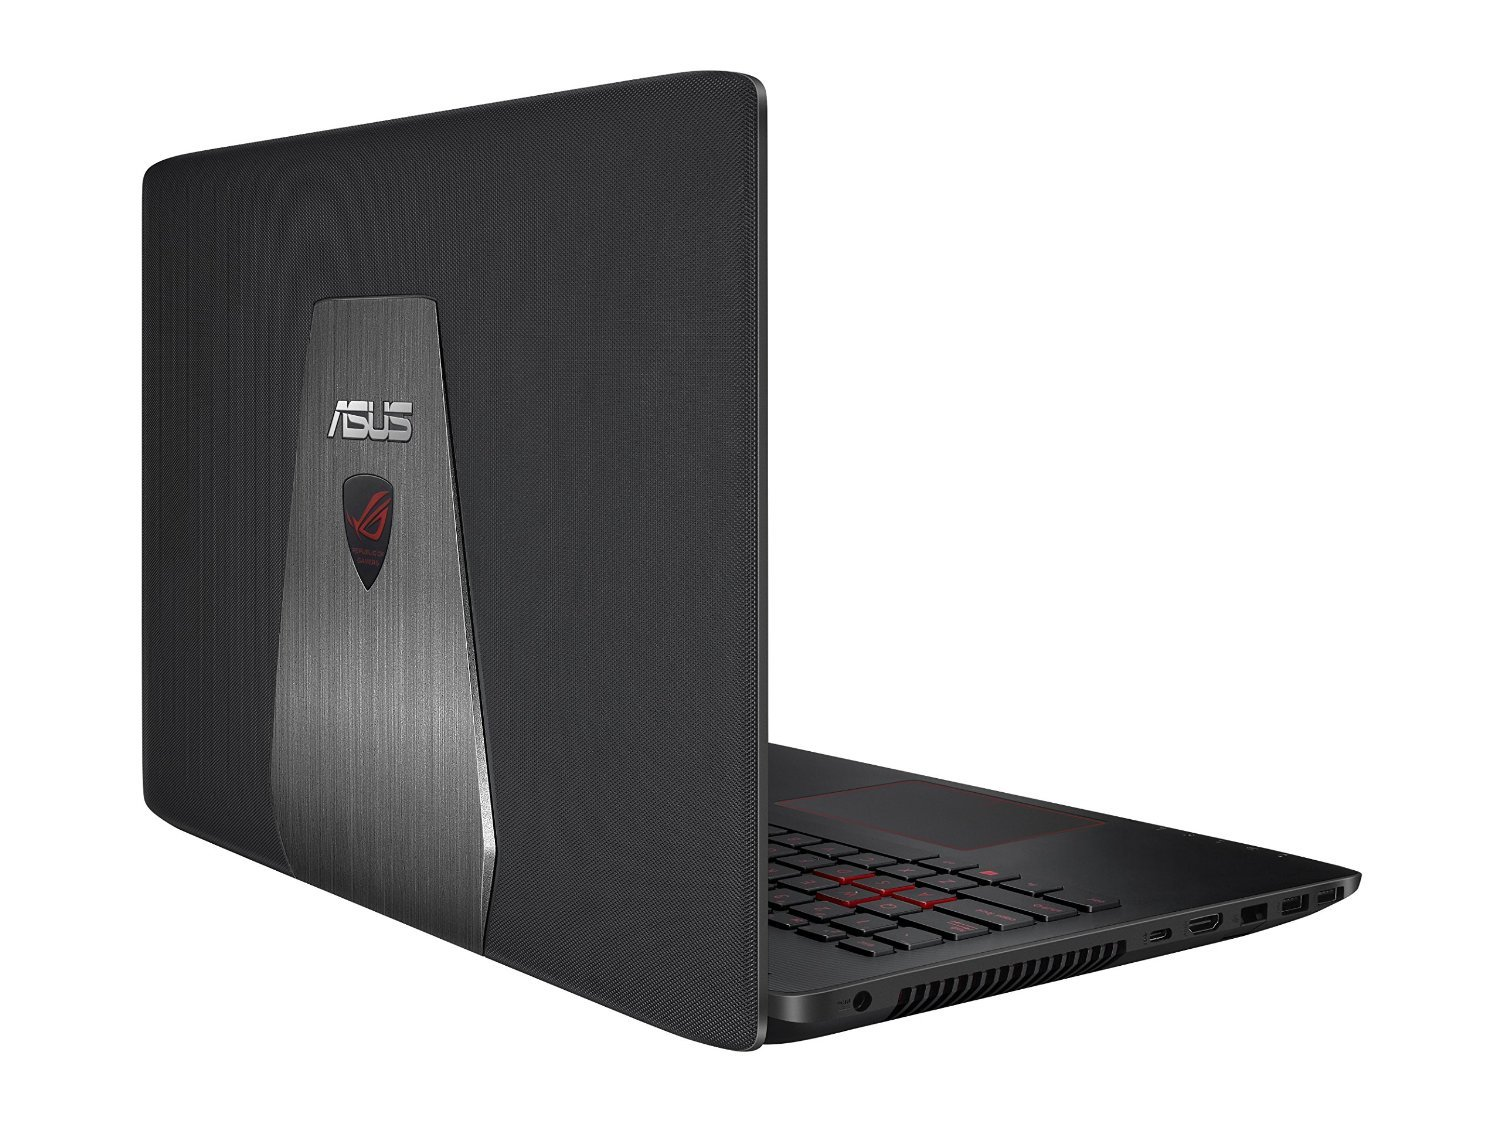 asus rog gl552vw cn274t test gaming notebook. Black Bedroom Furniture Sets. Home Design Ideas